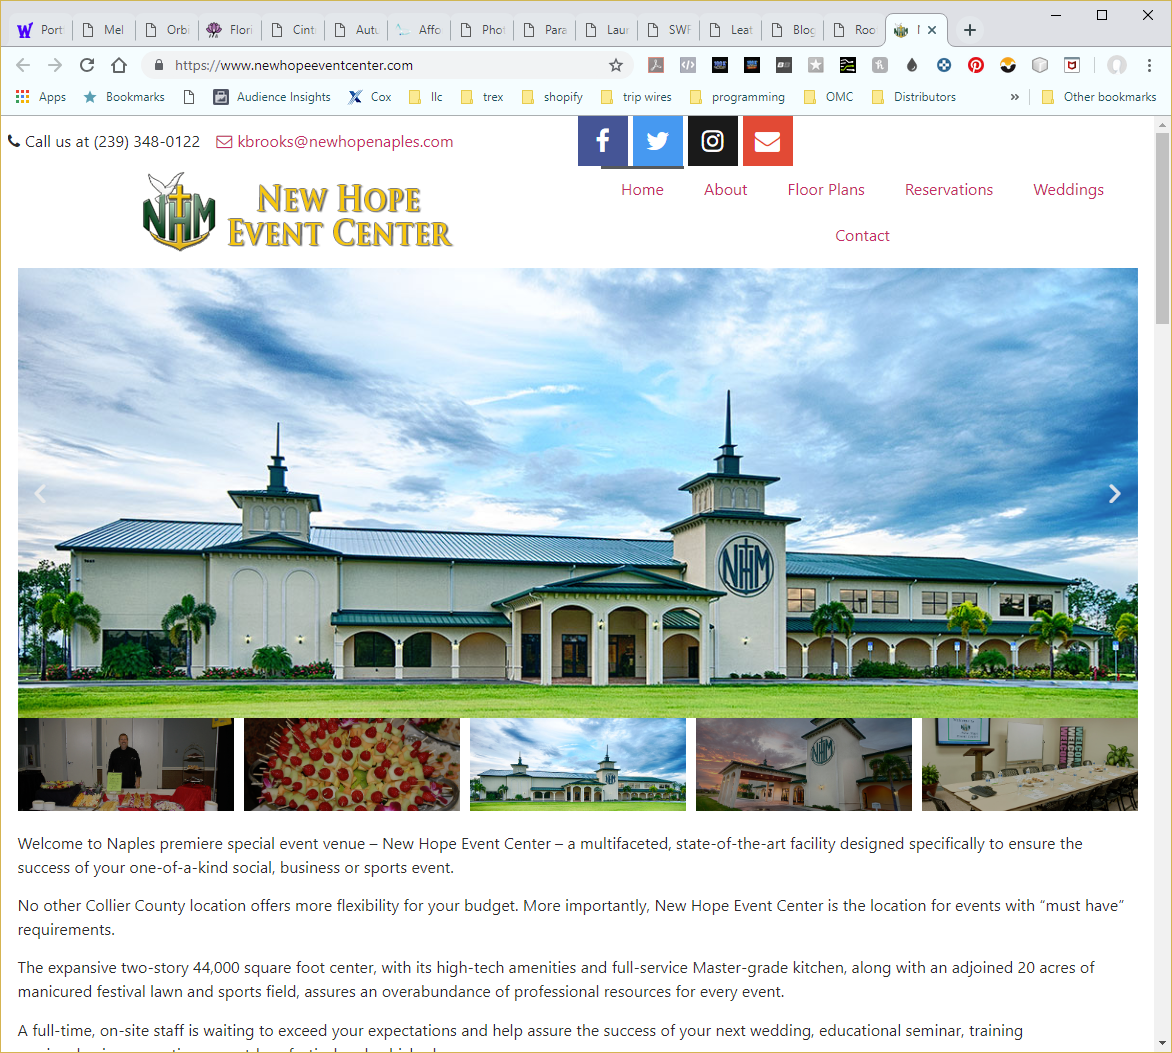 Wethersfield Web Services Profile Page - Website Image